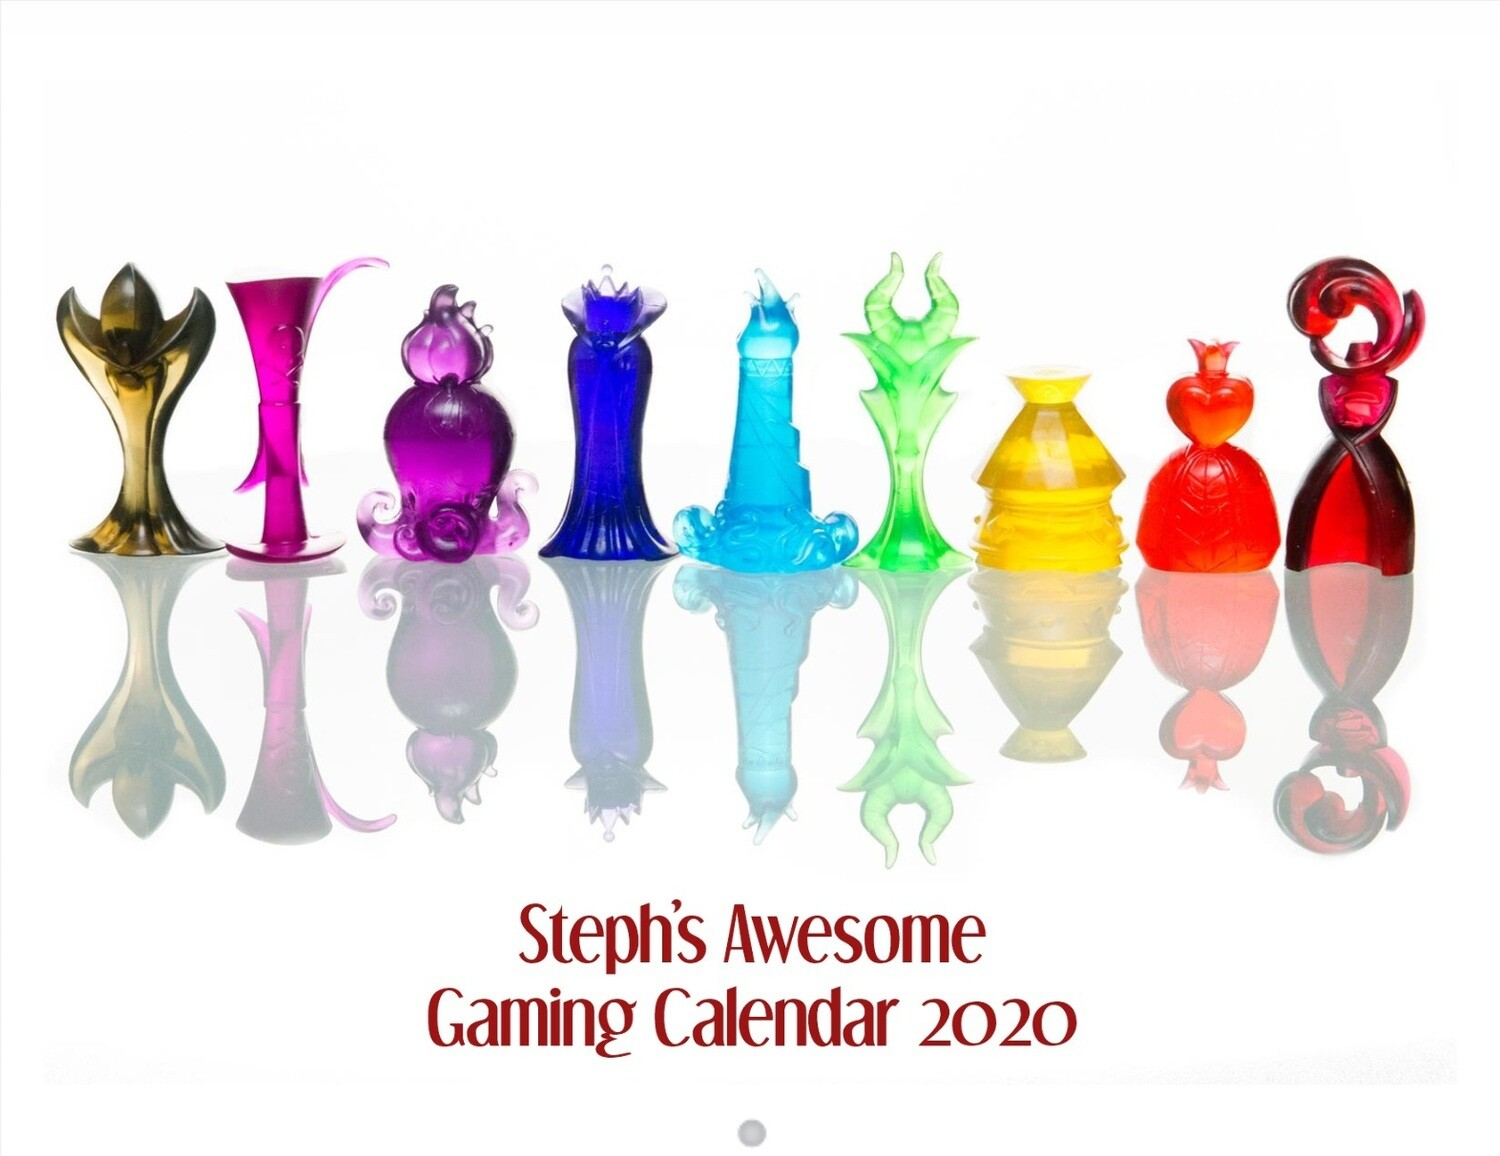 Steph's Awesome Gaming Calendar 2020!